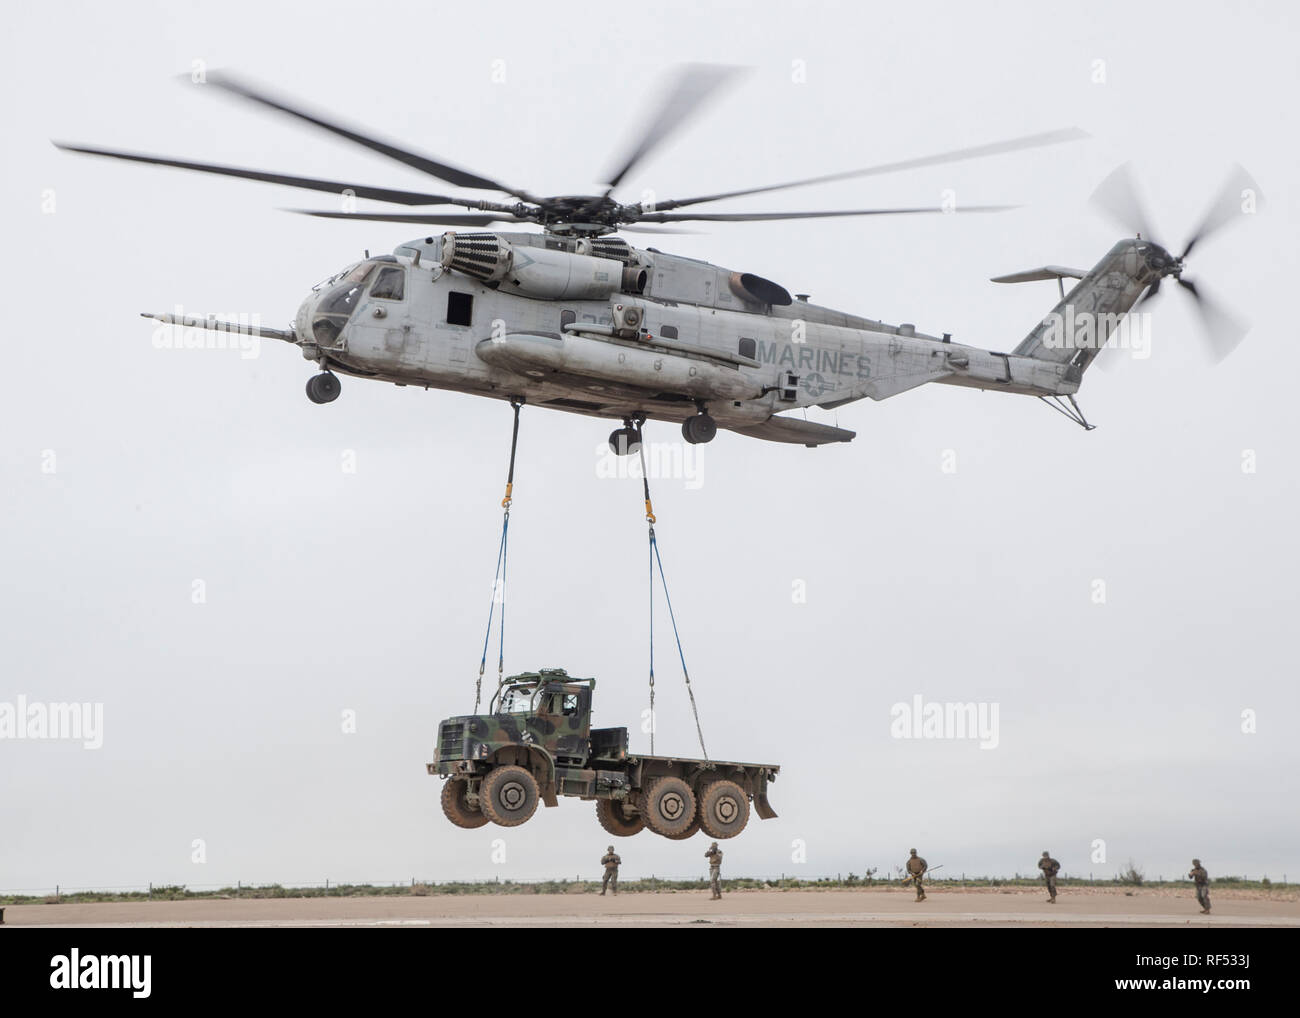 MARINE CORPS AIR STATION MIRAMAR, Calif.- A CH-53E Super Stallion with Marine Heavy Helicopter Squadron (HMH) 462, Marine Aircraft Group (MAG) 16, 3rd Marine Aircraft Wing (MAW), lifts a Medium Tactical Vehicle Replacement (MTVR) at Marine Corps Air Station Miramar, Calif., Jan. 16. Marines from HMH-462 and 1st Marine Logistics Group conducted an external lift of an MTVR to improve their support capabilities and exercise the aircraft's limit of 36,000 pounds. (U.S. Marine Corps photo by Lance Cpl. Clare J. McIntire) Stock Photo